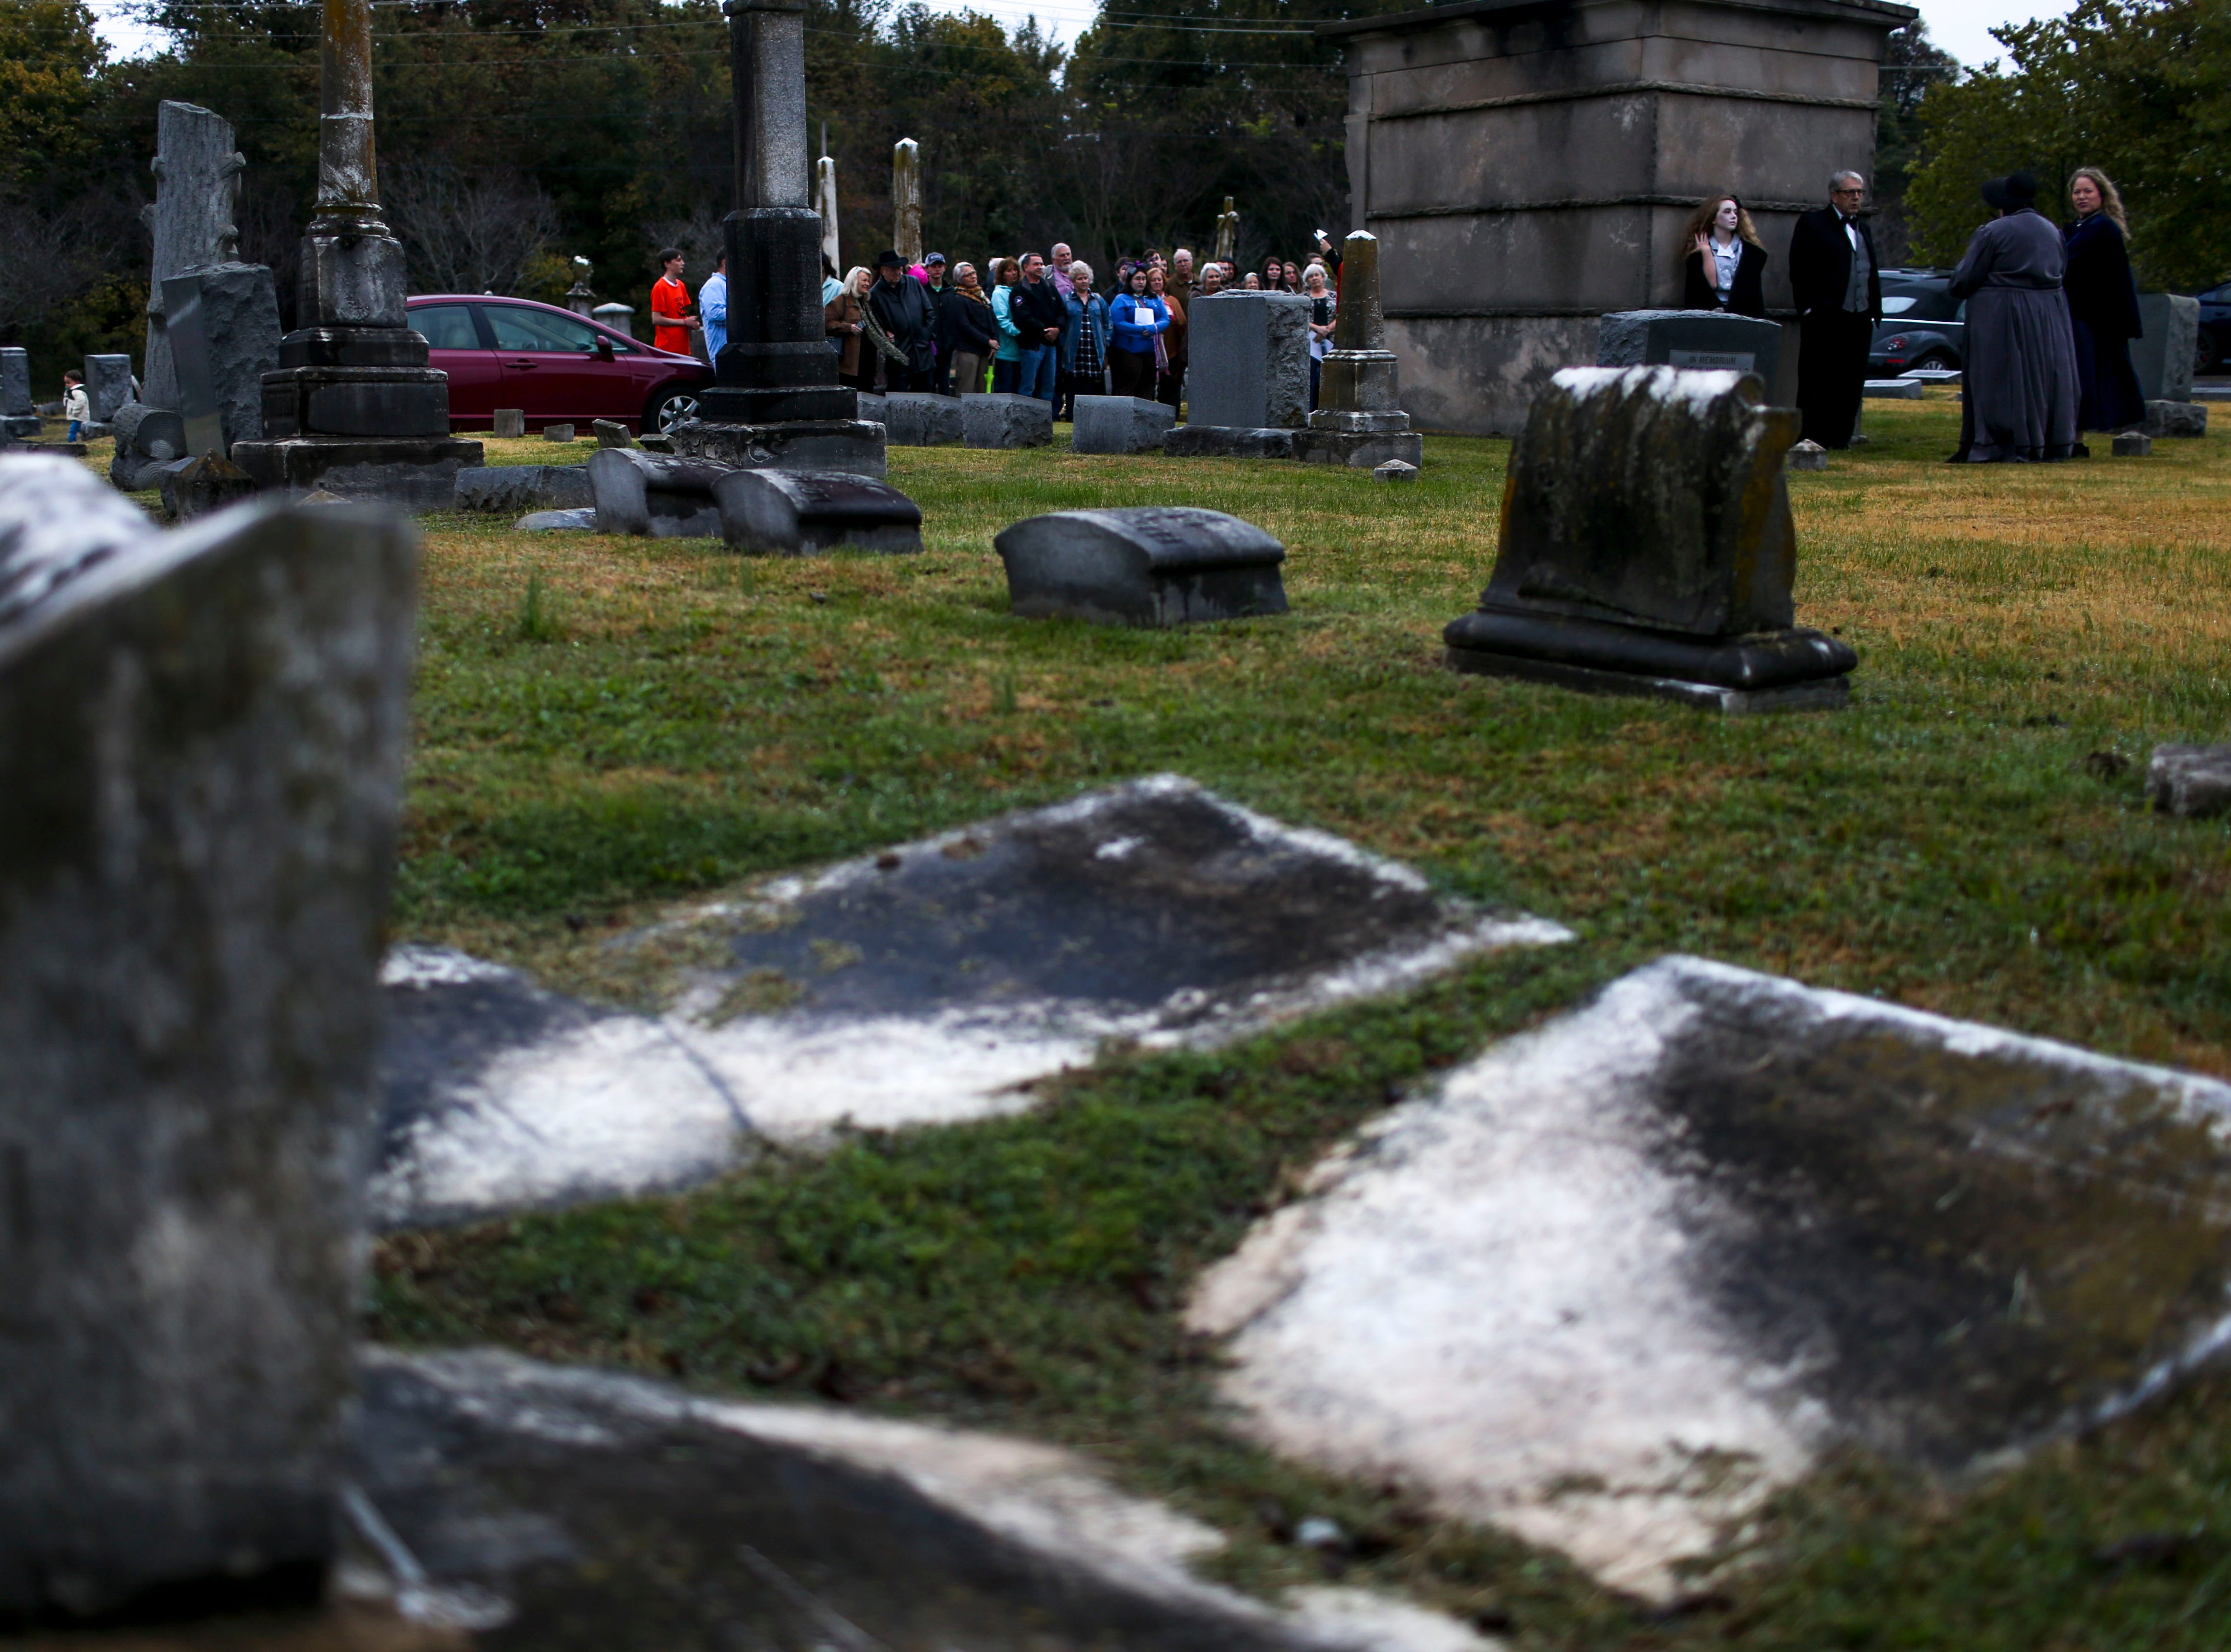 A crowd gathers to listen to monologues at a mausoleum during Ghost Walk tour at Riverside Cemetery in Jackson, Tenn., on Friday, Oct. 26, 2018.